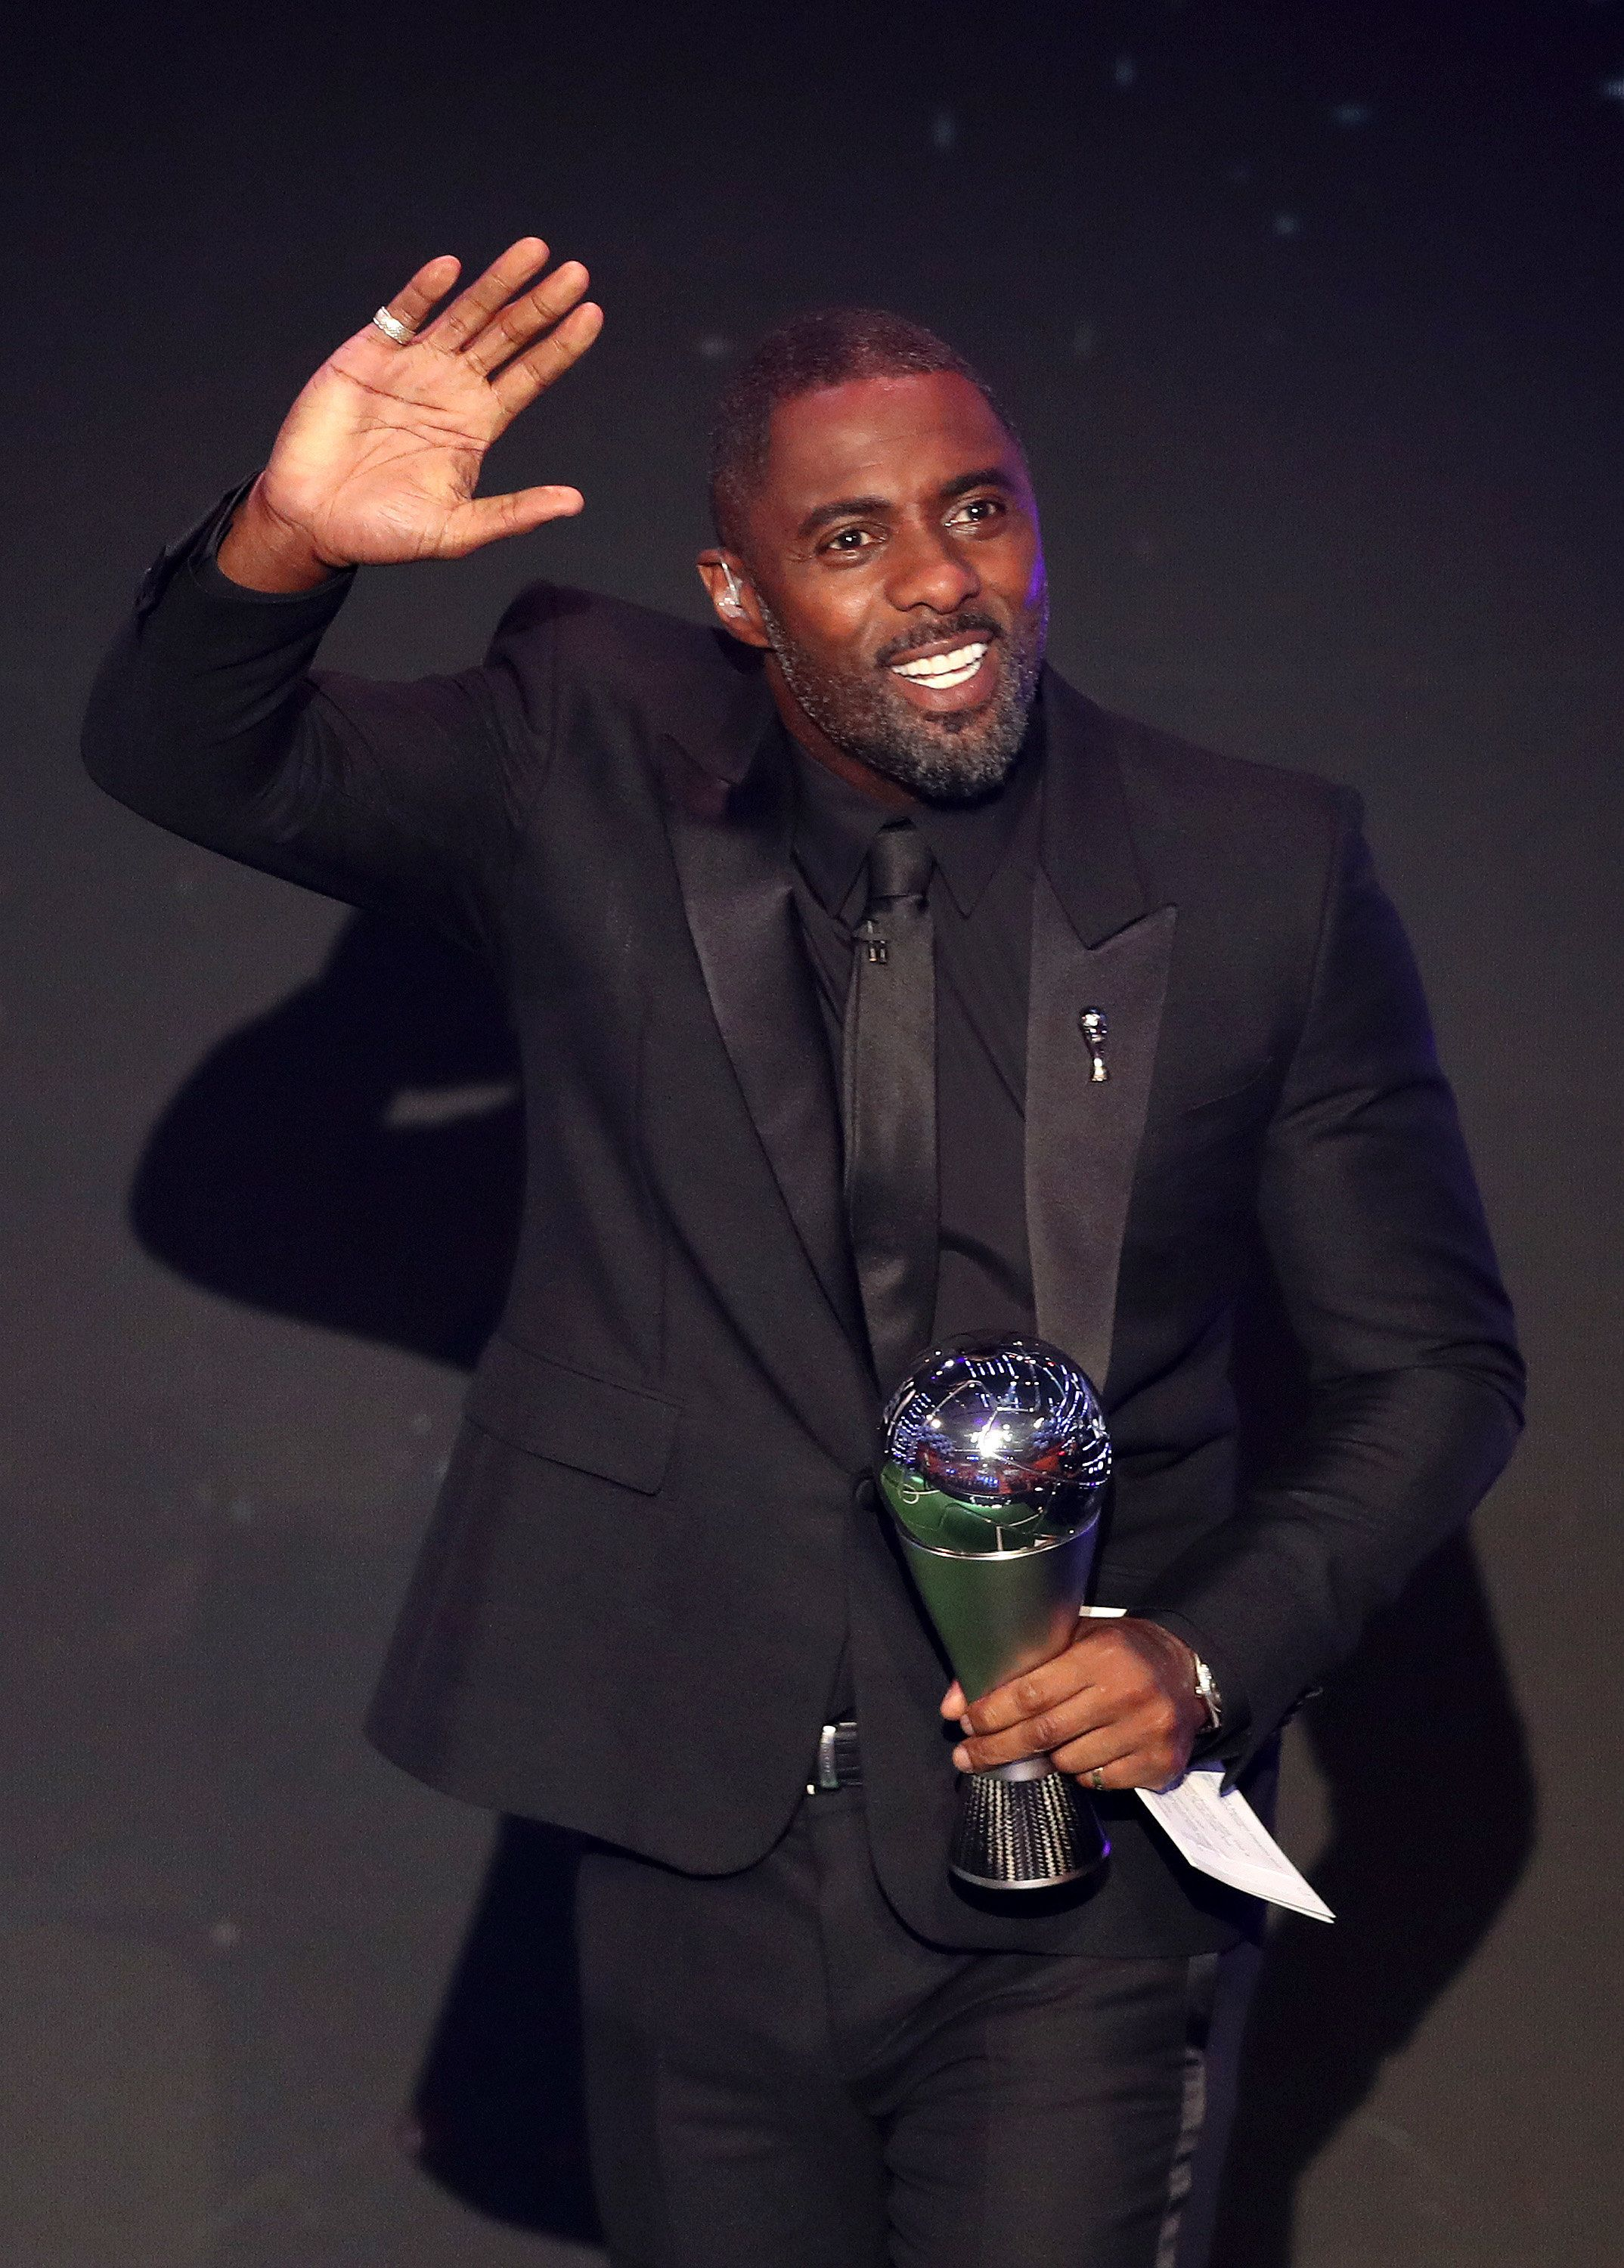 Idris Elba Will Star In 'Cats' With Taylor Swift, James